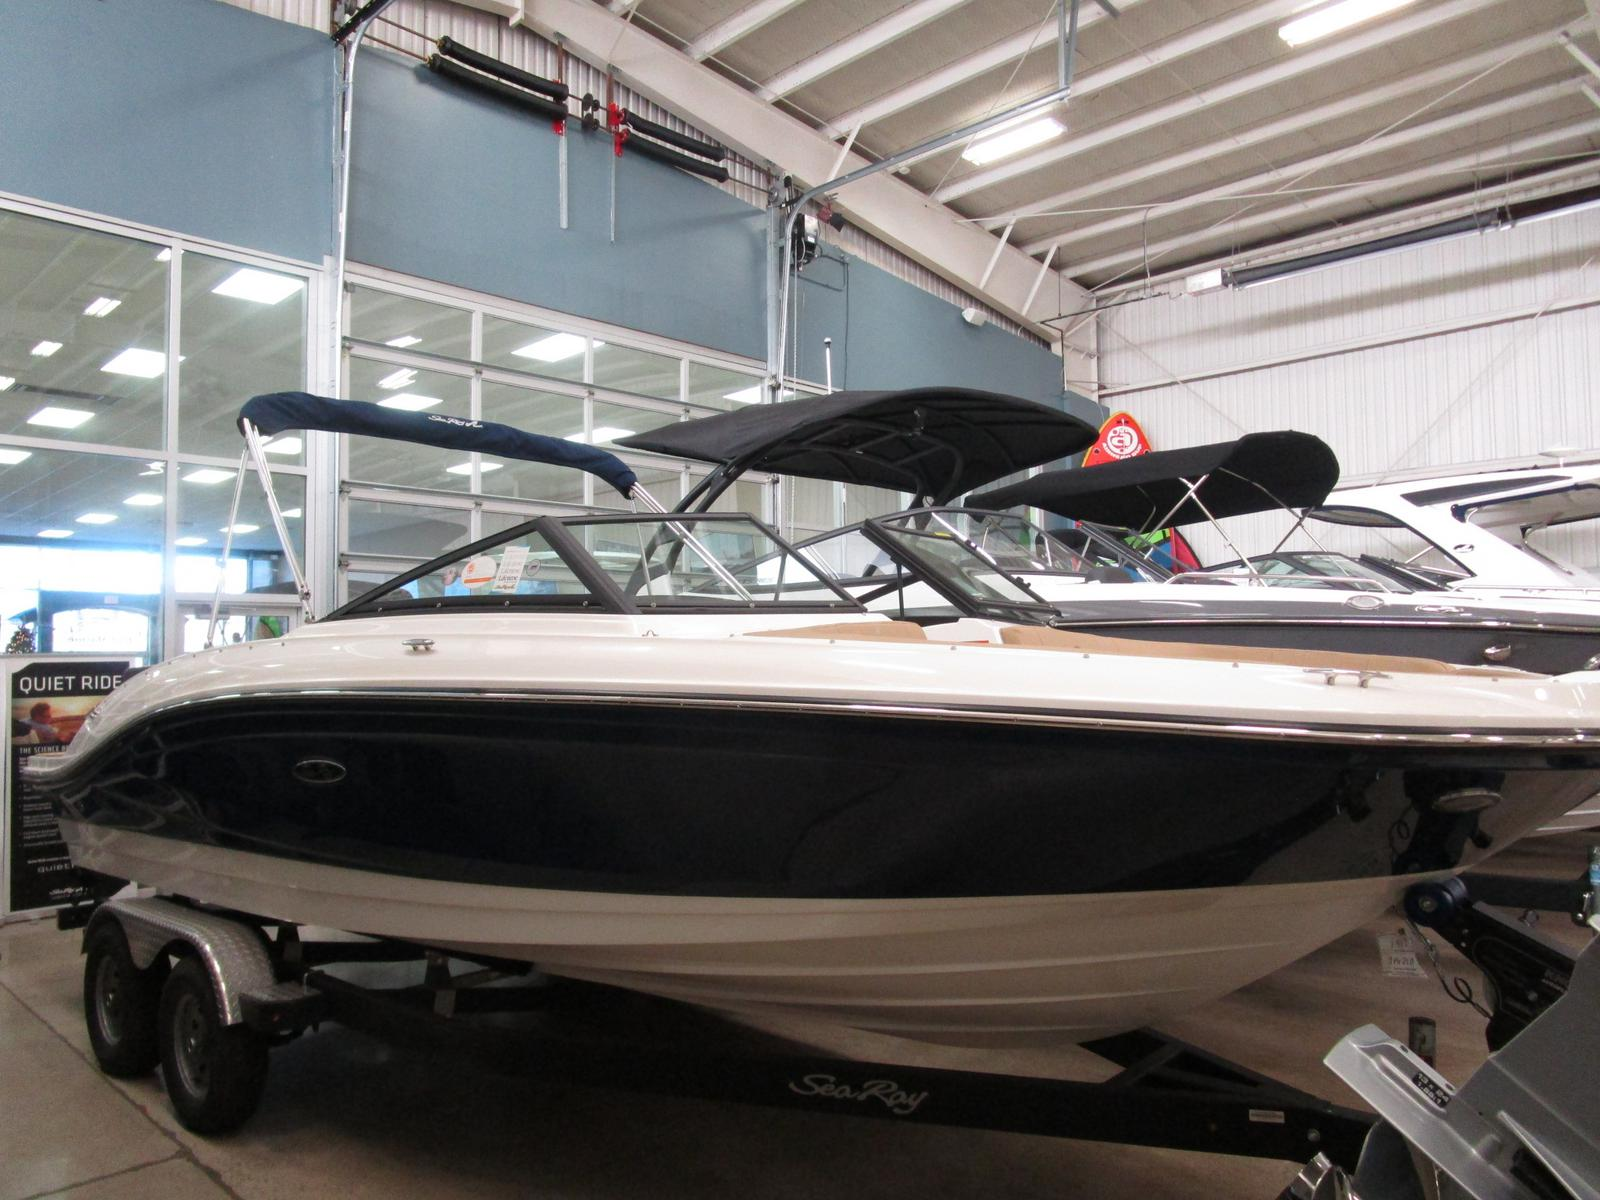 2019 Sea Ray boat for sale, model of the boat is SPX 210 & Image # 2 of 7